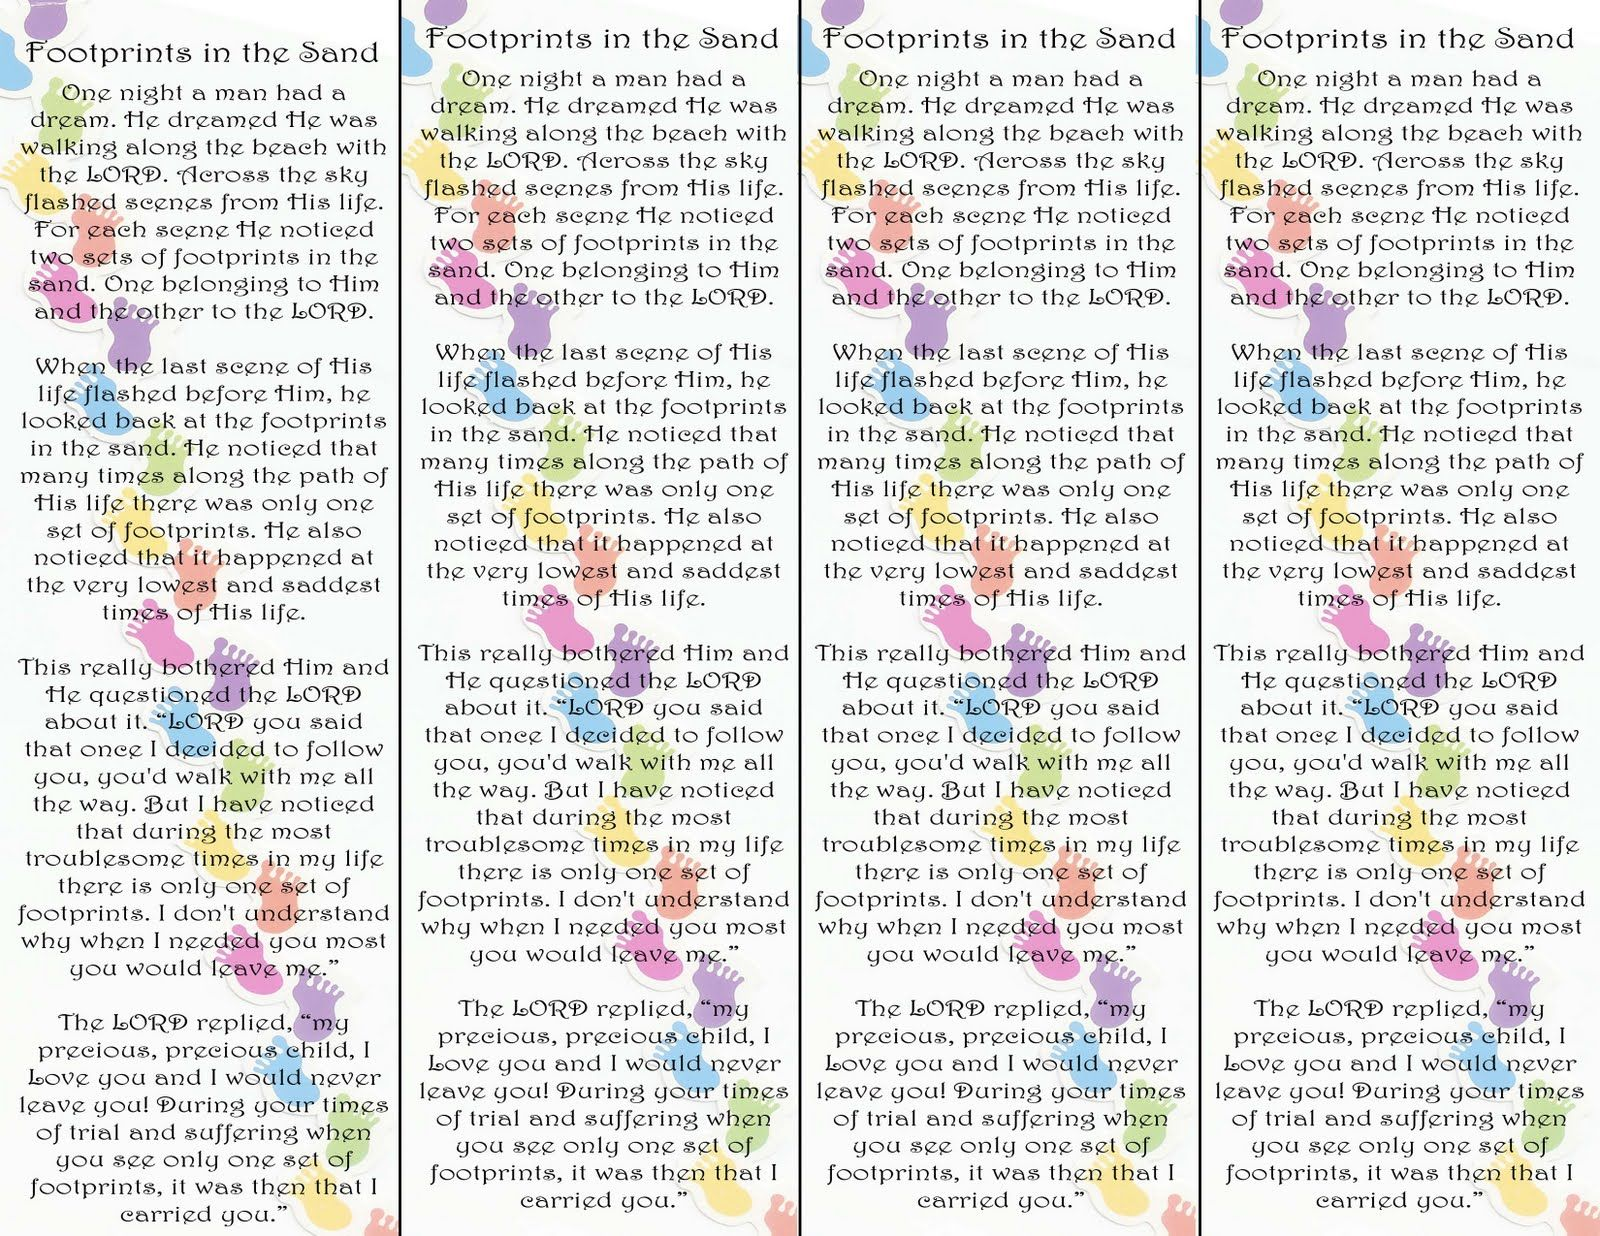 picture about Footprints in the Sand Poem Printable Version known as Footprints within the Sand Poem Bookmark Printable Edition Check out